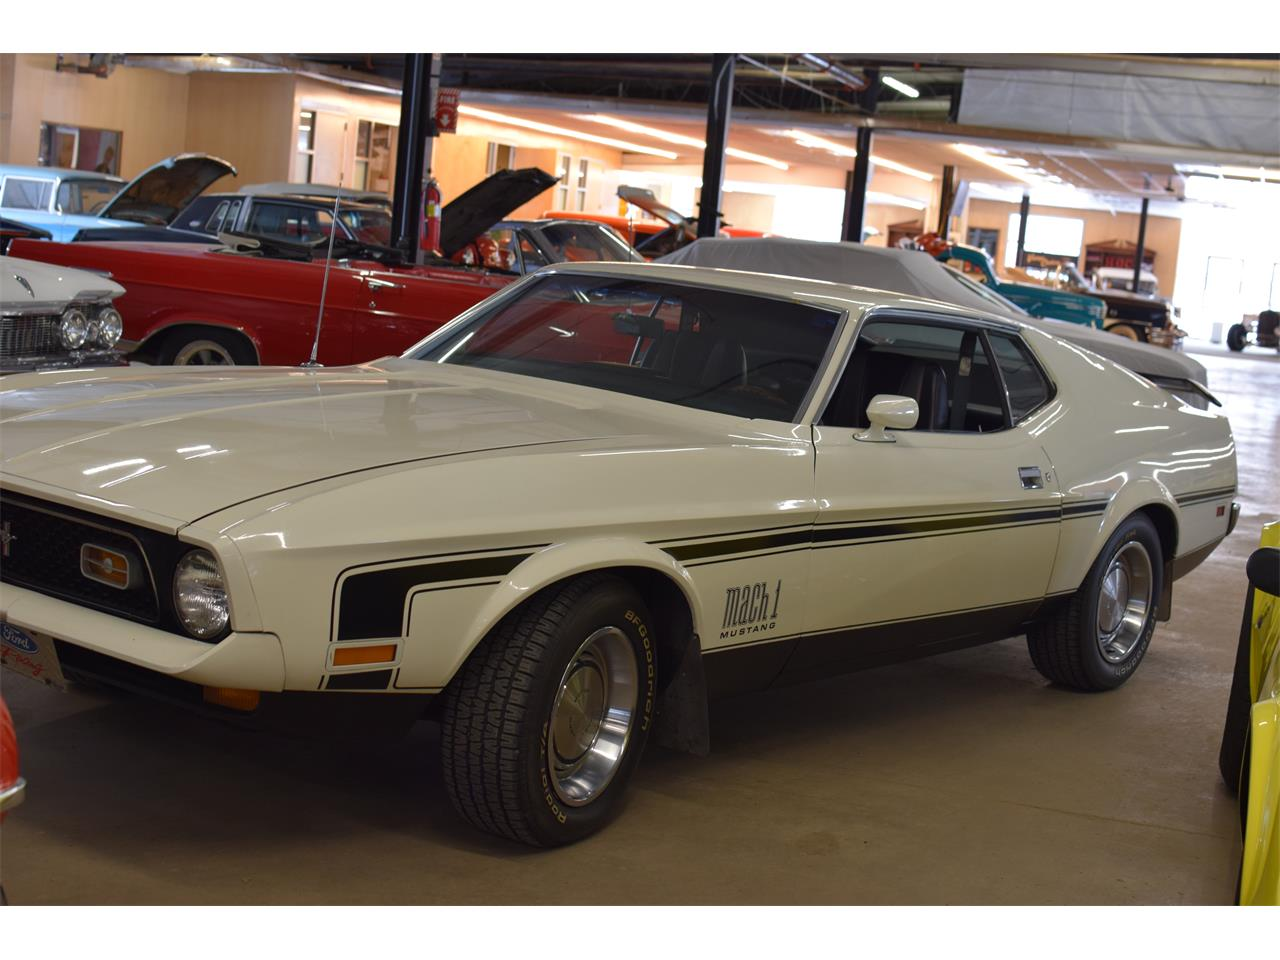 1971 Ford Mustang Mach 1 (CC-1415961) for sale in Watertown, Minnesota